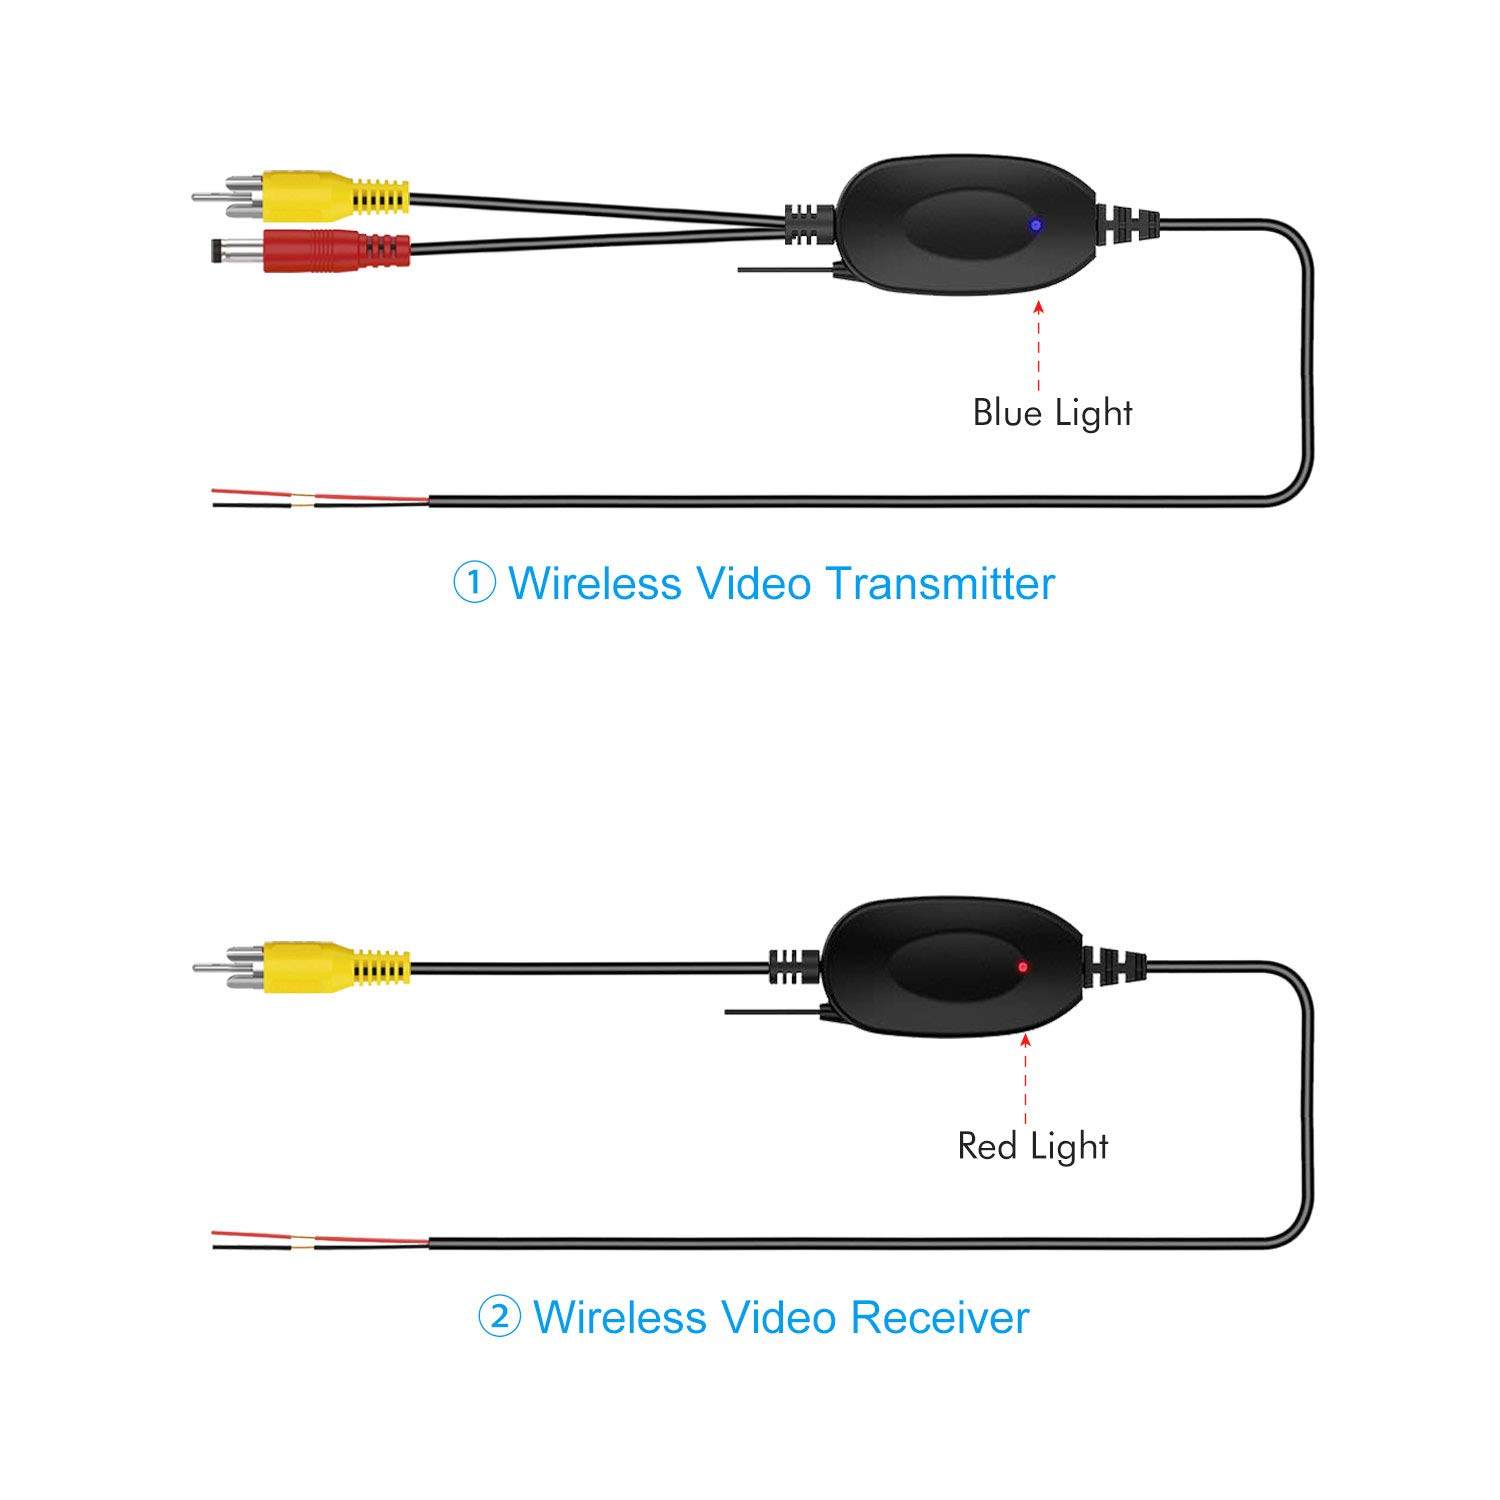 Esky Wireless Color Video Transmitter And Receiver For Plcm7200 Wiring Diagram Vehicle Backup Camera Front Car Cell Phones Accessories